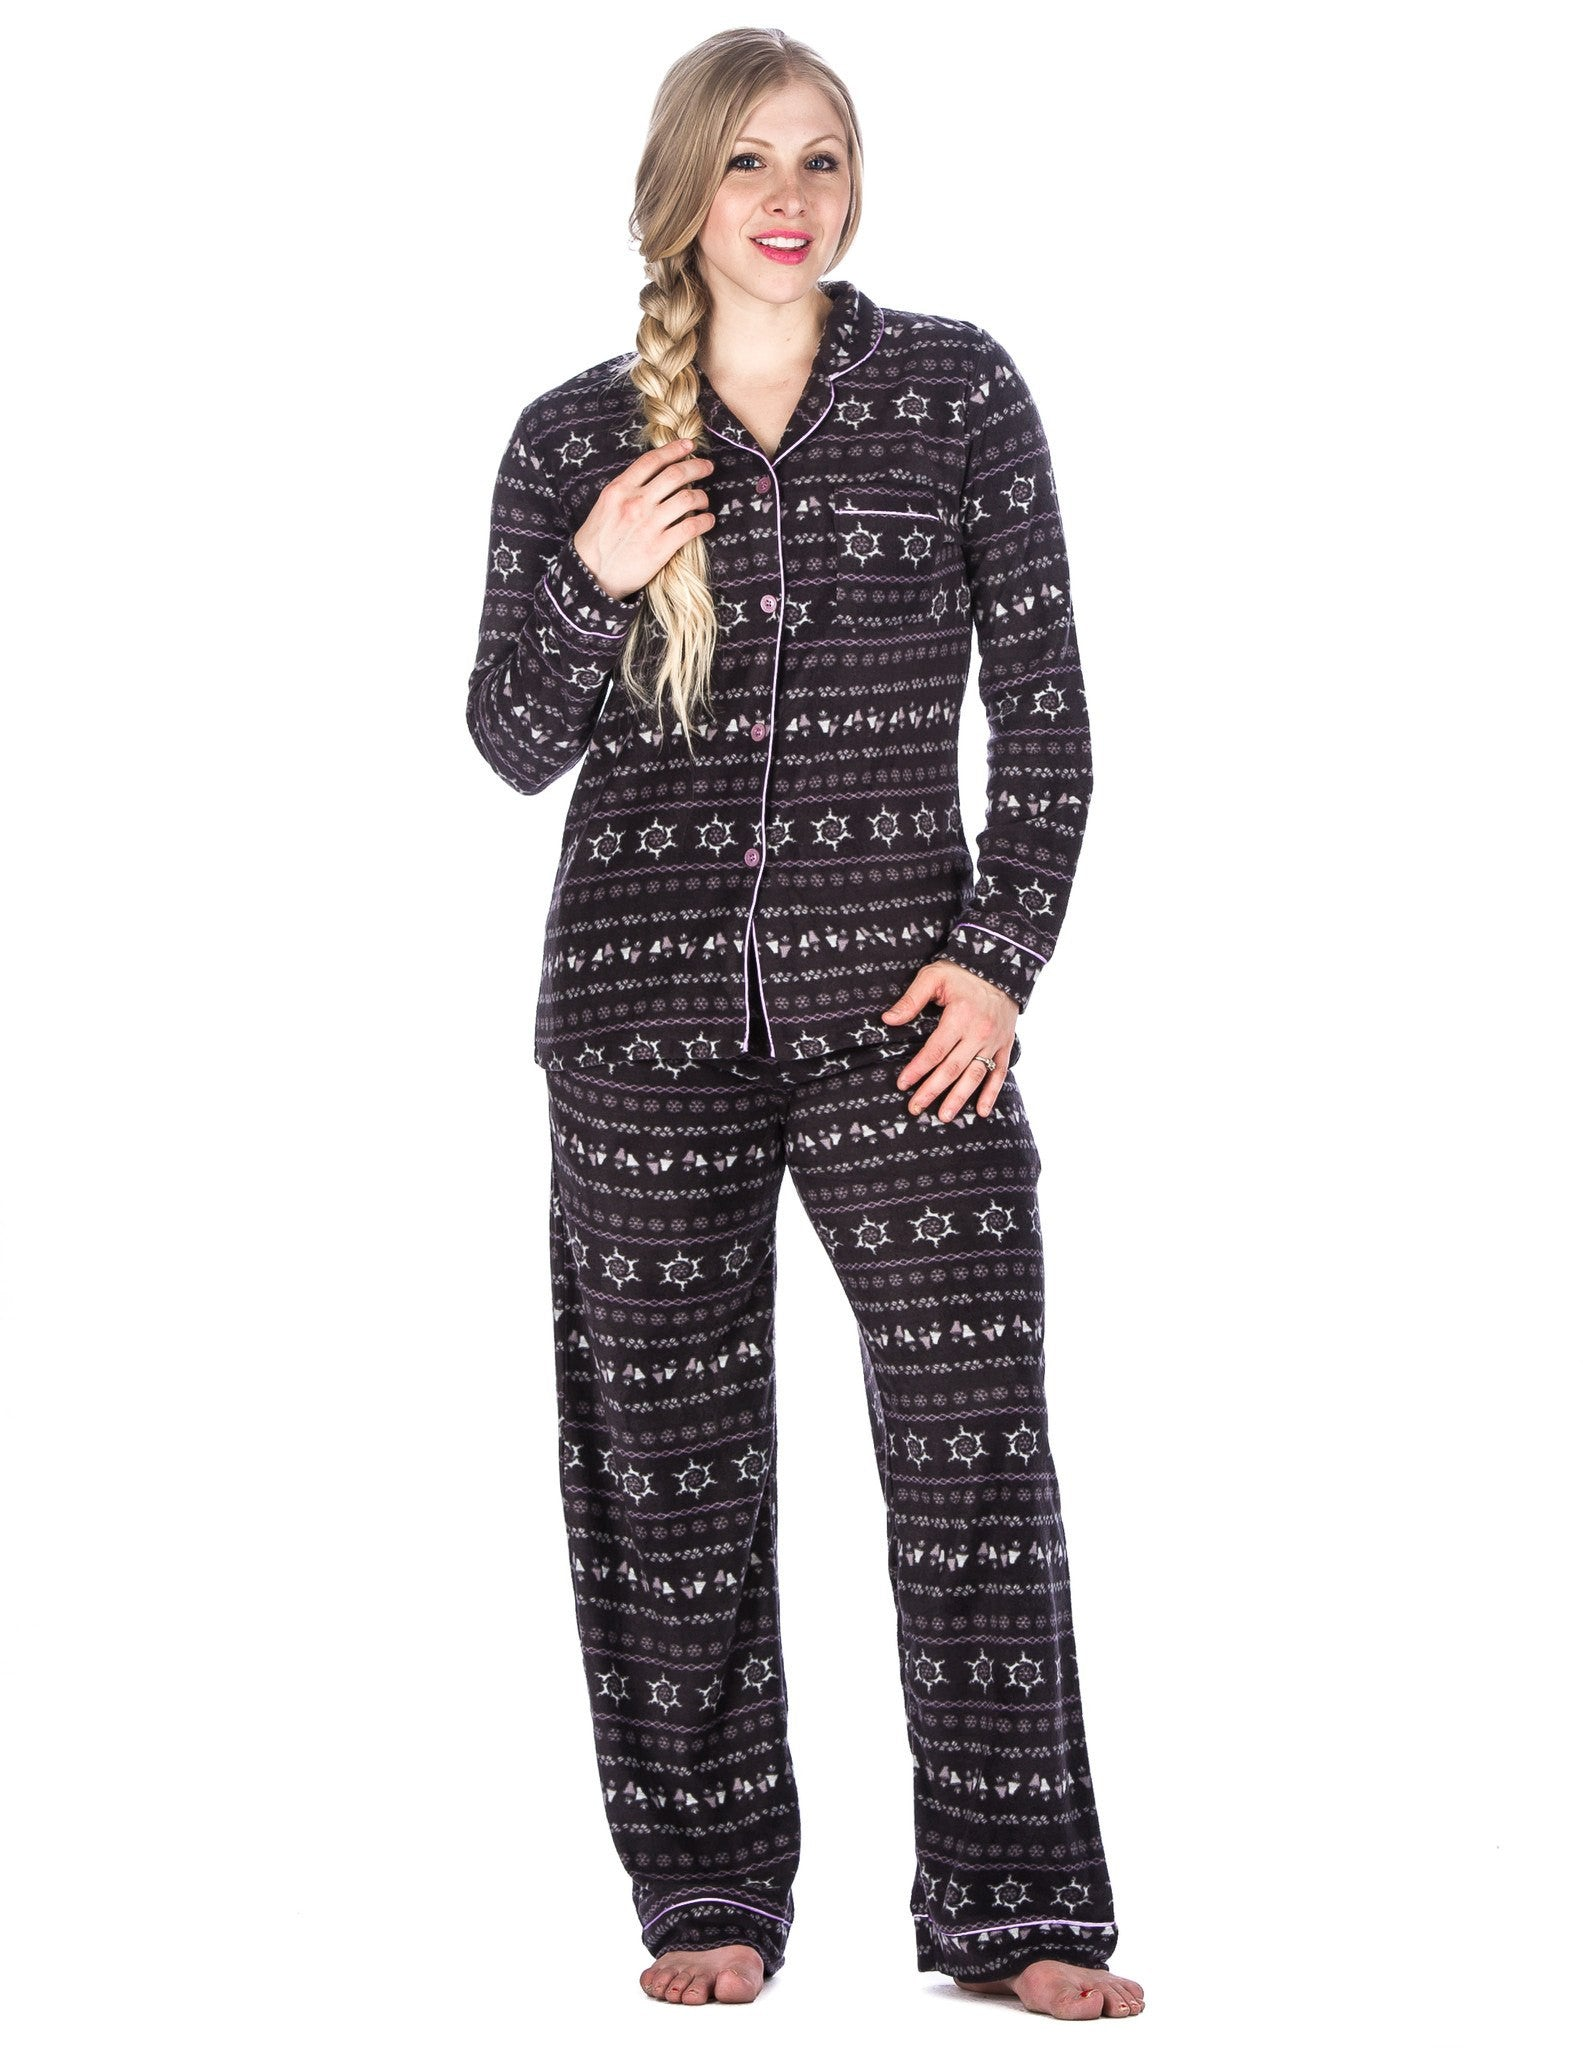 Box Packaged Women's Microfleece Pajama Sleepwear Set